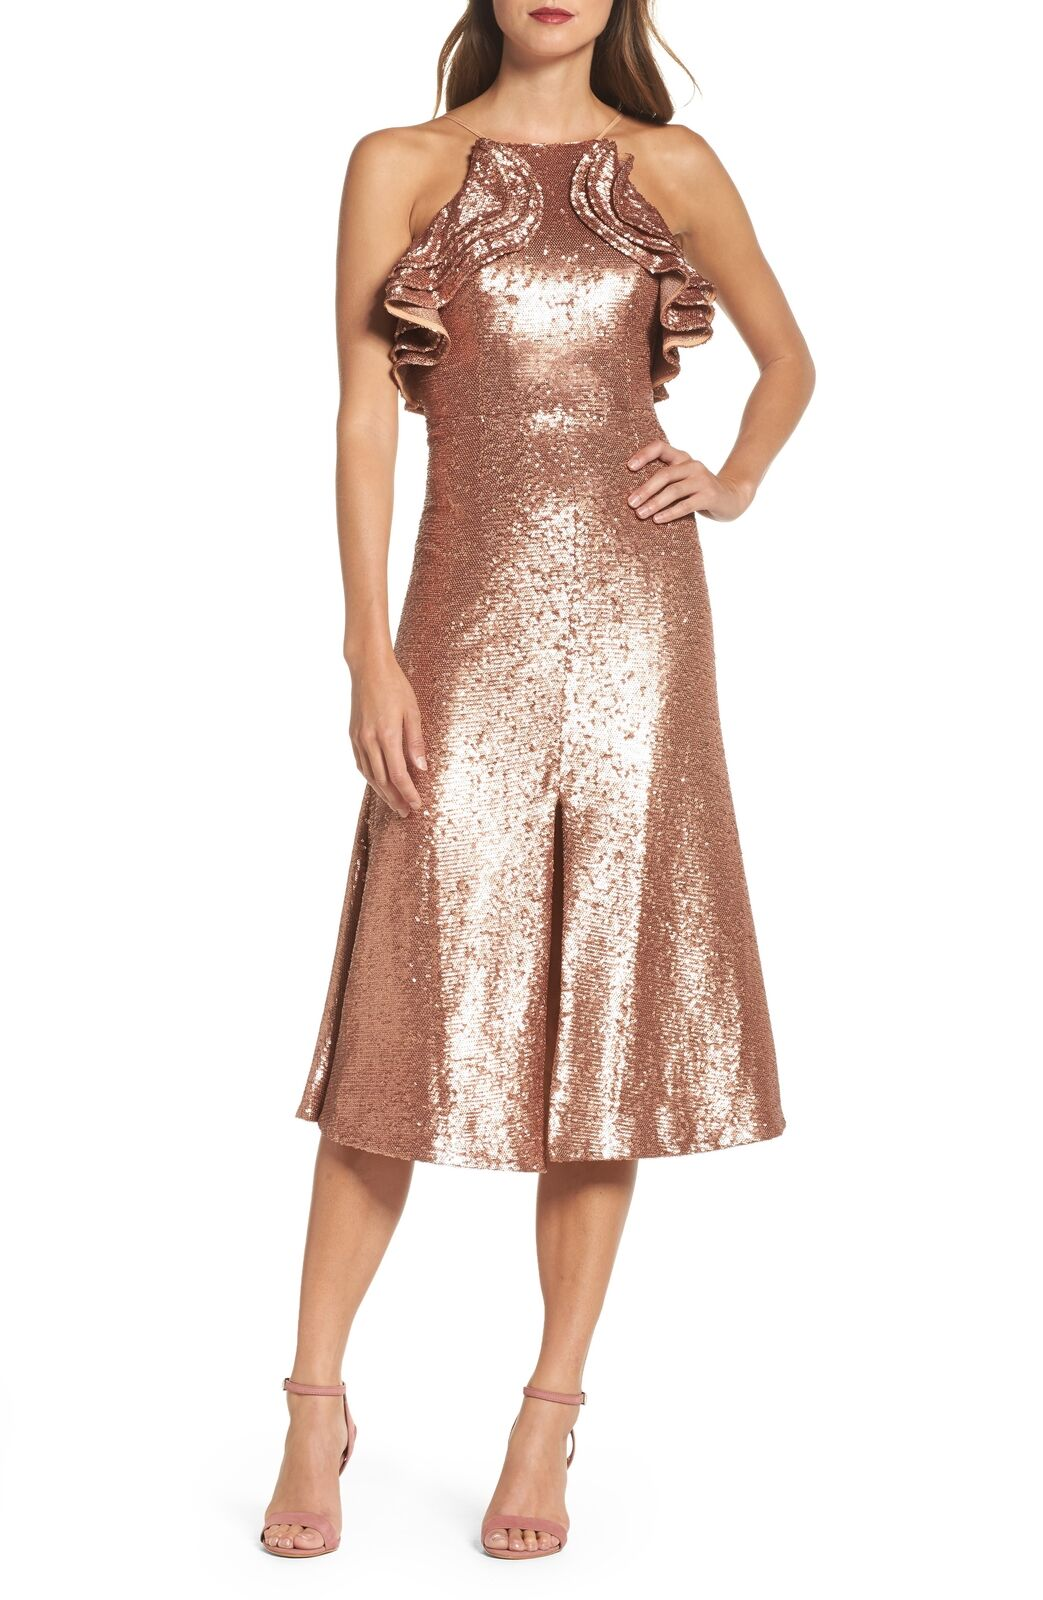 NEW C MEO COLLECTIVE Sequin Ruffle Midi DRESS SIZE XS 0  240 pink gold NORDSTROM